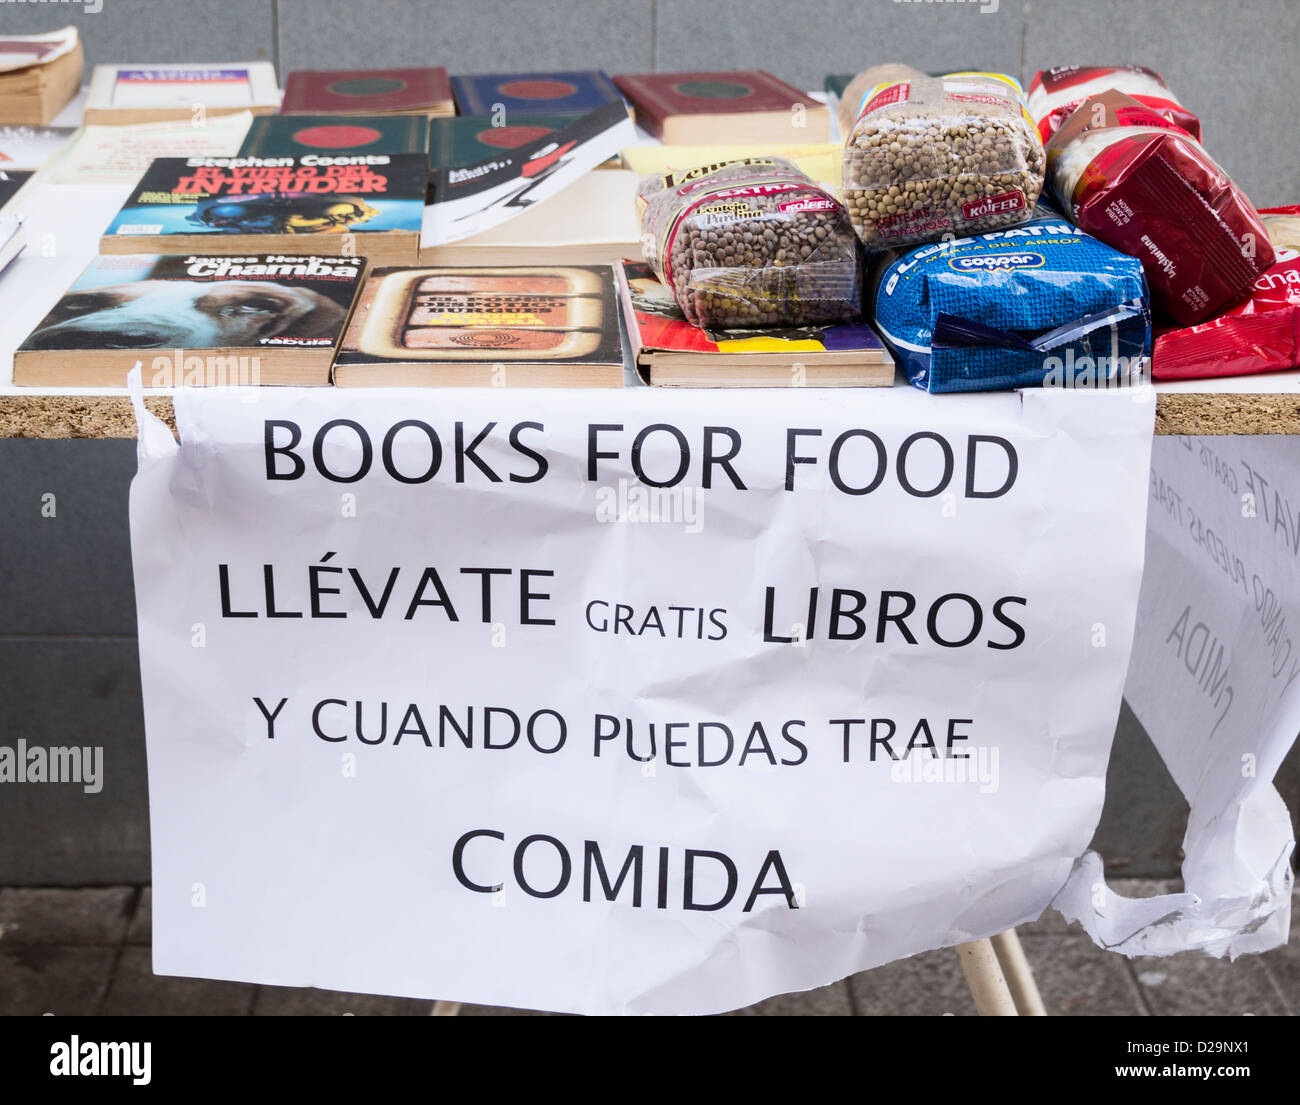 Local community anti austerity Books for Food campaign in Las Palmas, Gran Canaria, Canary Islands, Spain - Stock Image